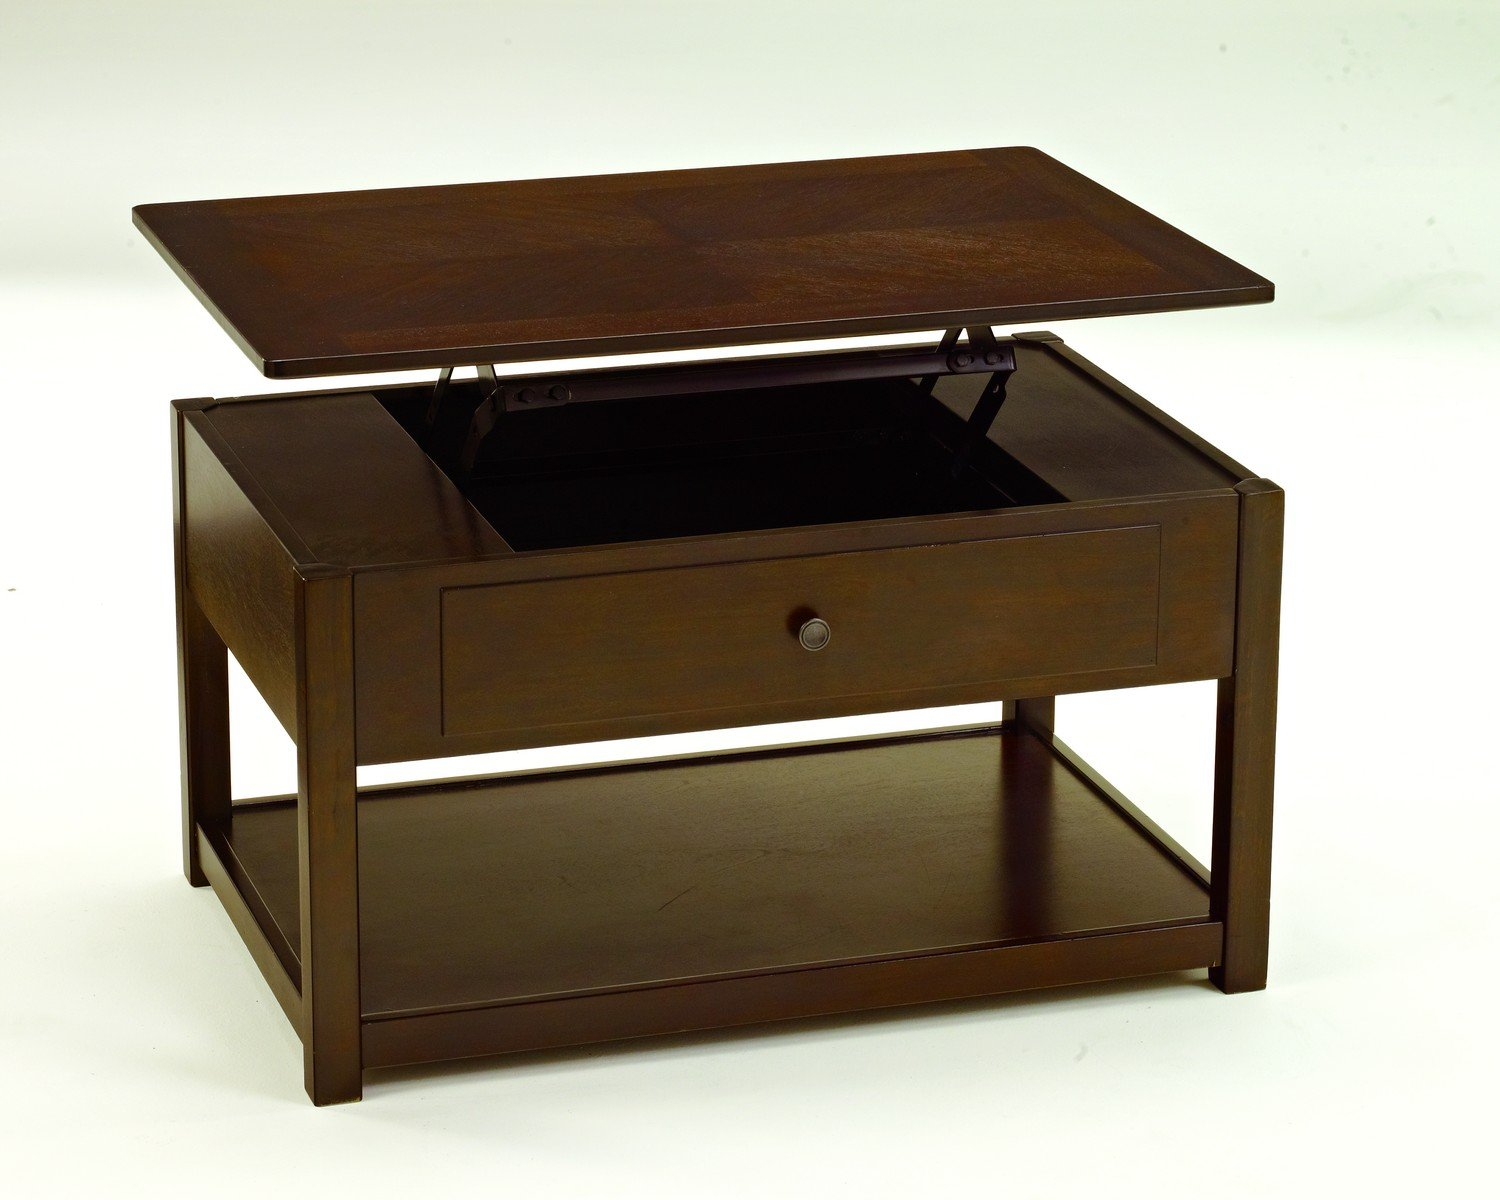 Lift top cocktail table ashley furniture - Amazon Com Ashley Furniture Signature Design Marion Lift Top Coffee Table 1 Drawer And 1 Fixed Shelf Contemporary Dark Brown Kitchen Dining